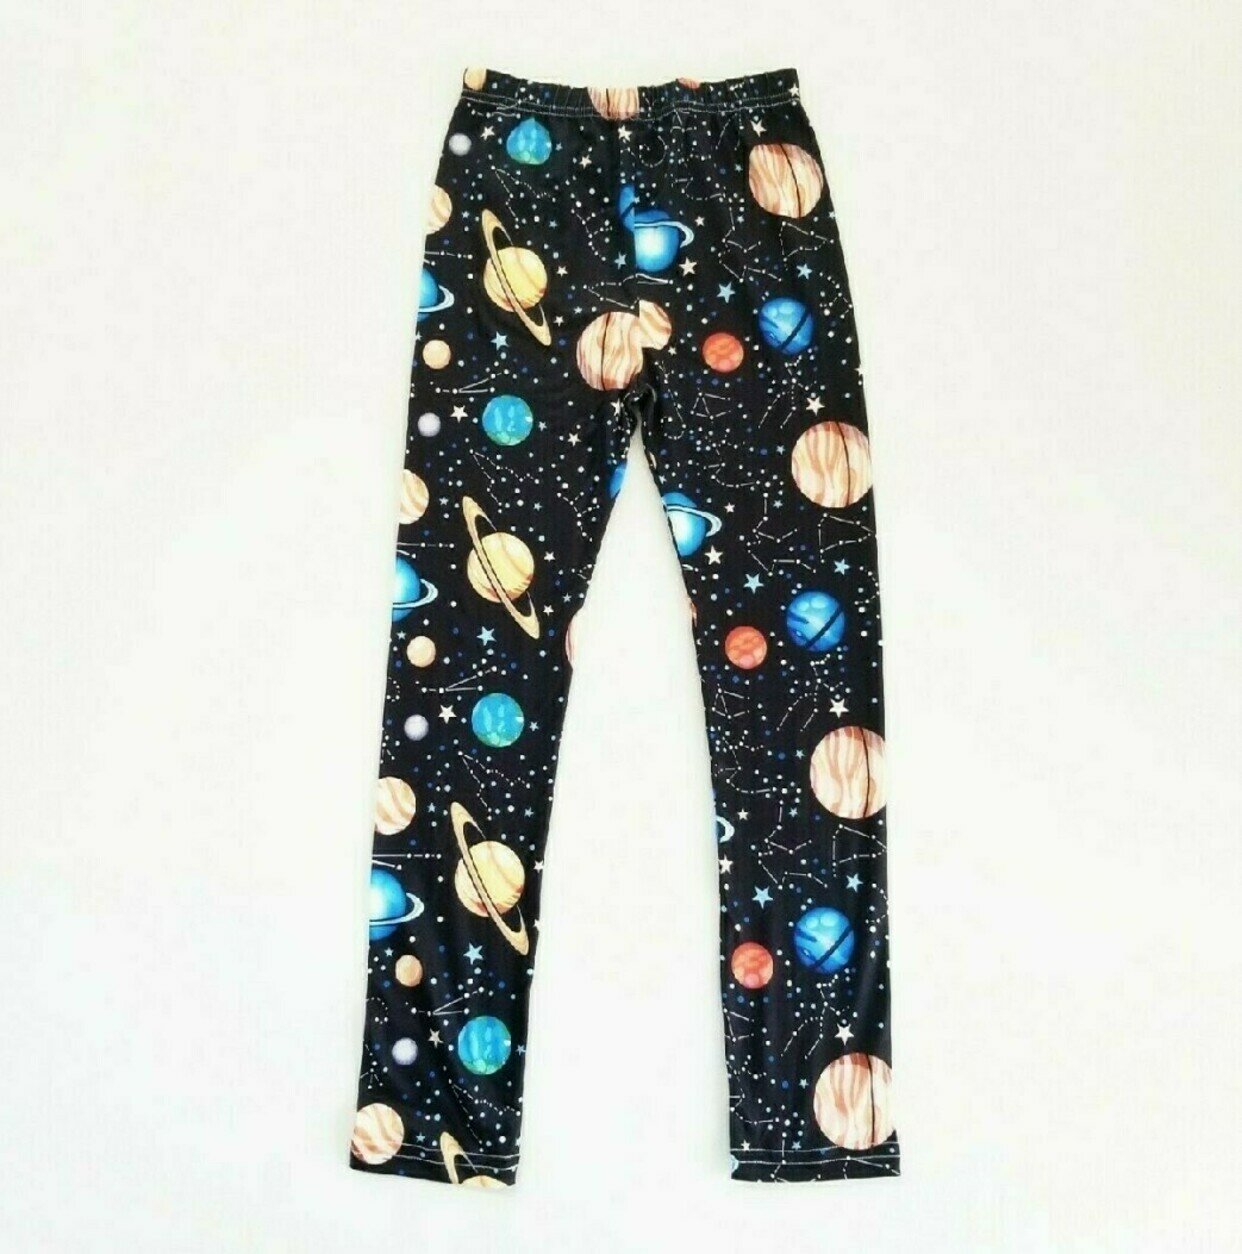 1 Dot = 10 Million Miles Measuring Planets by Chain of Being MiniVerse Leggings Blue Planet Leggings Proportional Distance Astronomy